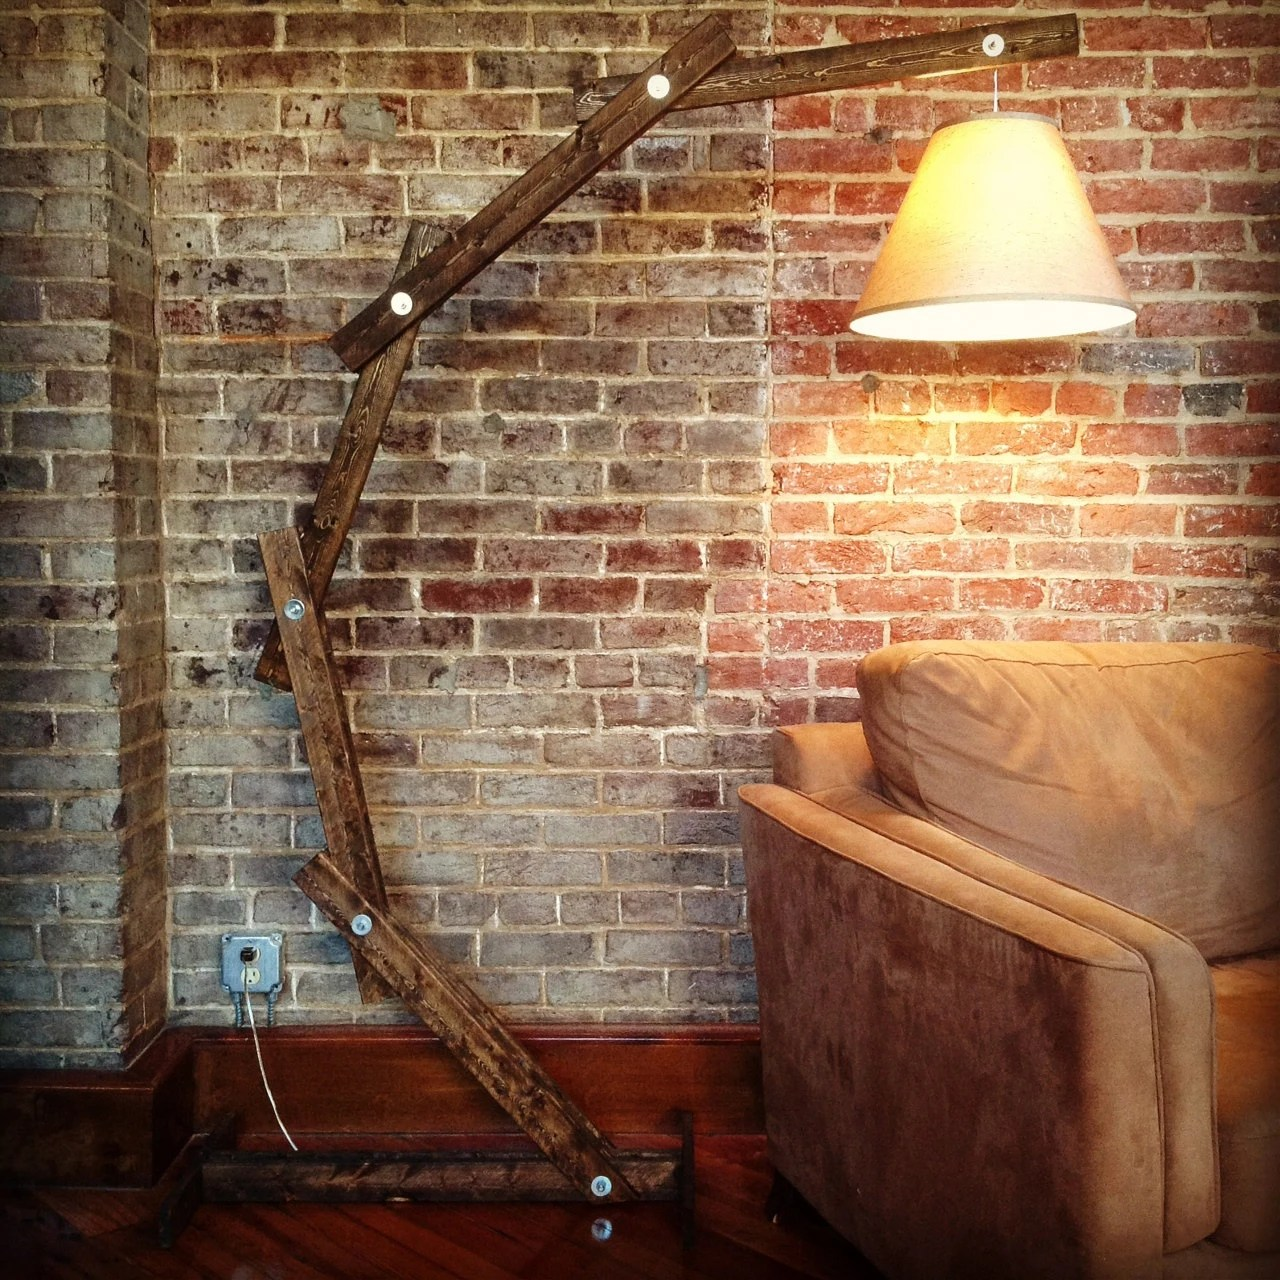 How To Build A Floor Lamp Rustic Wood Arc Floor Lamp By Awalkthroughthewoods On Etsy